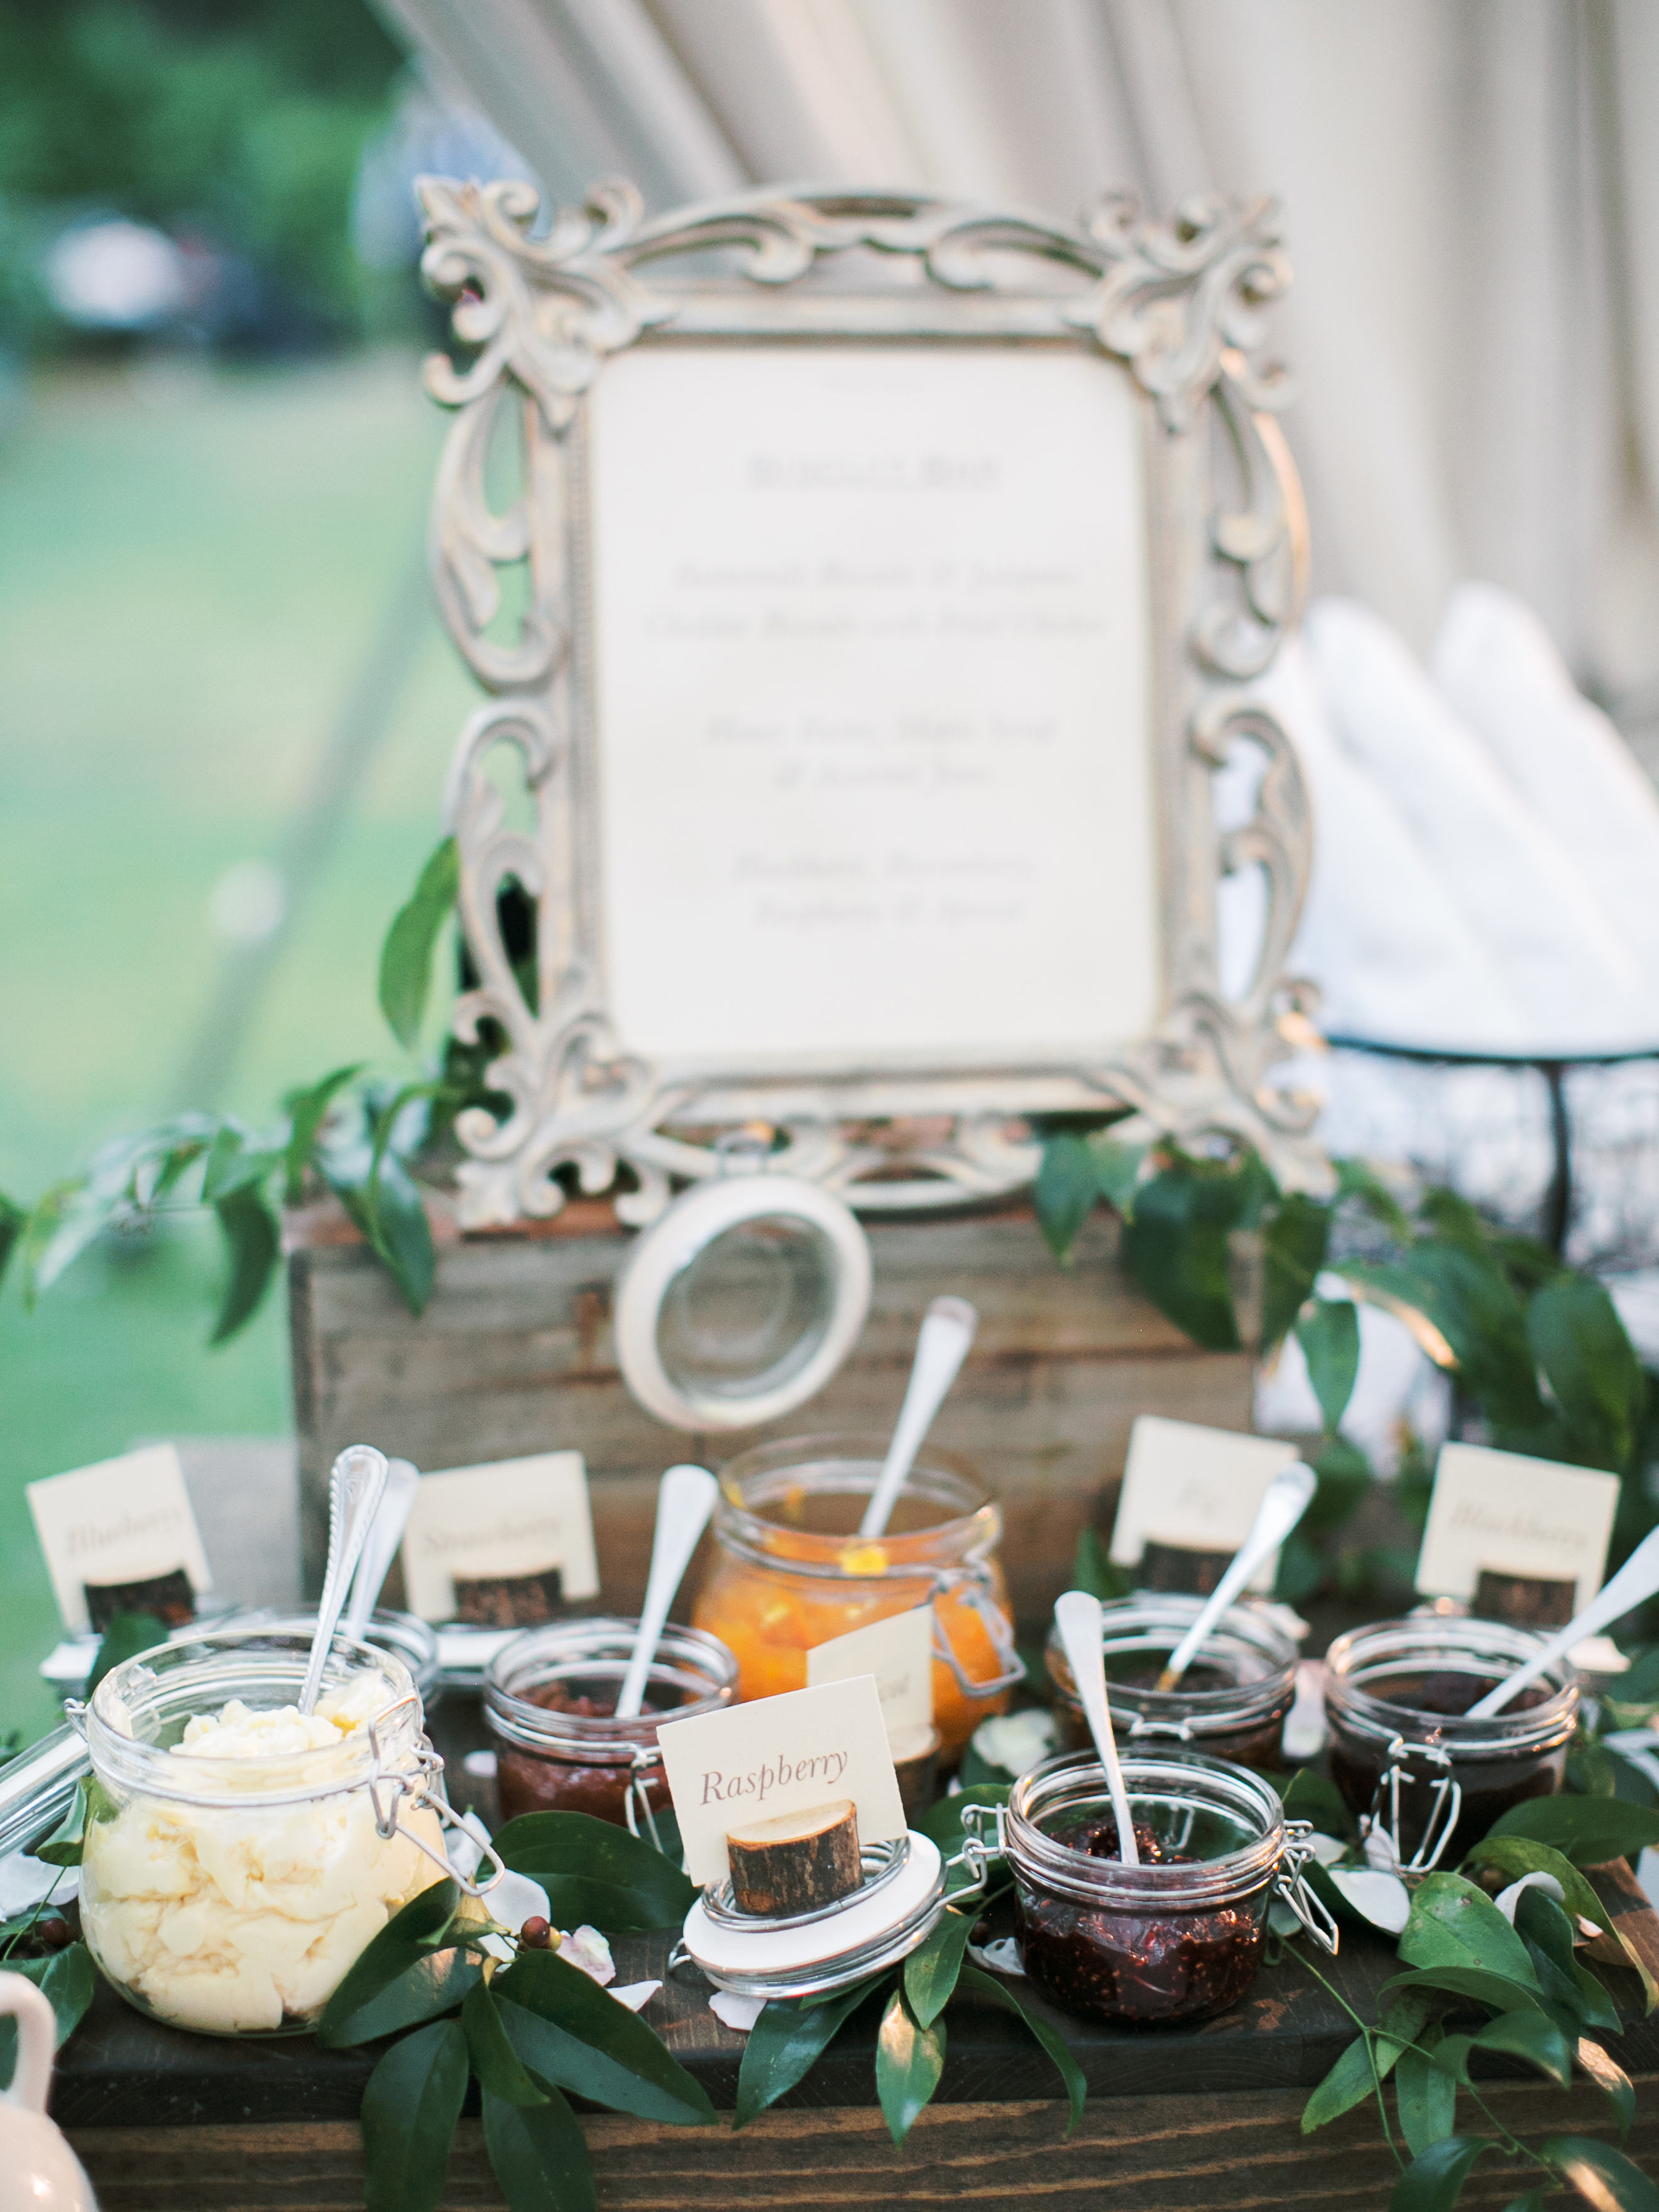 leighton craig wedding biscuit condiments on table